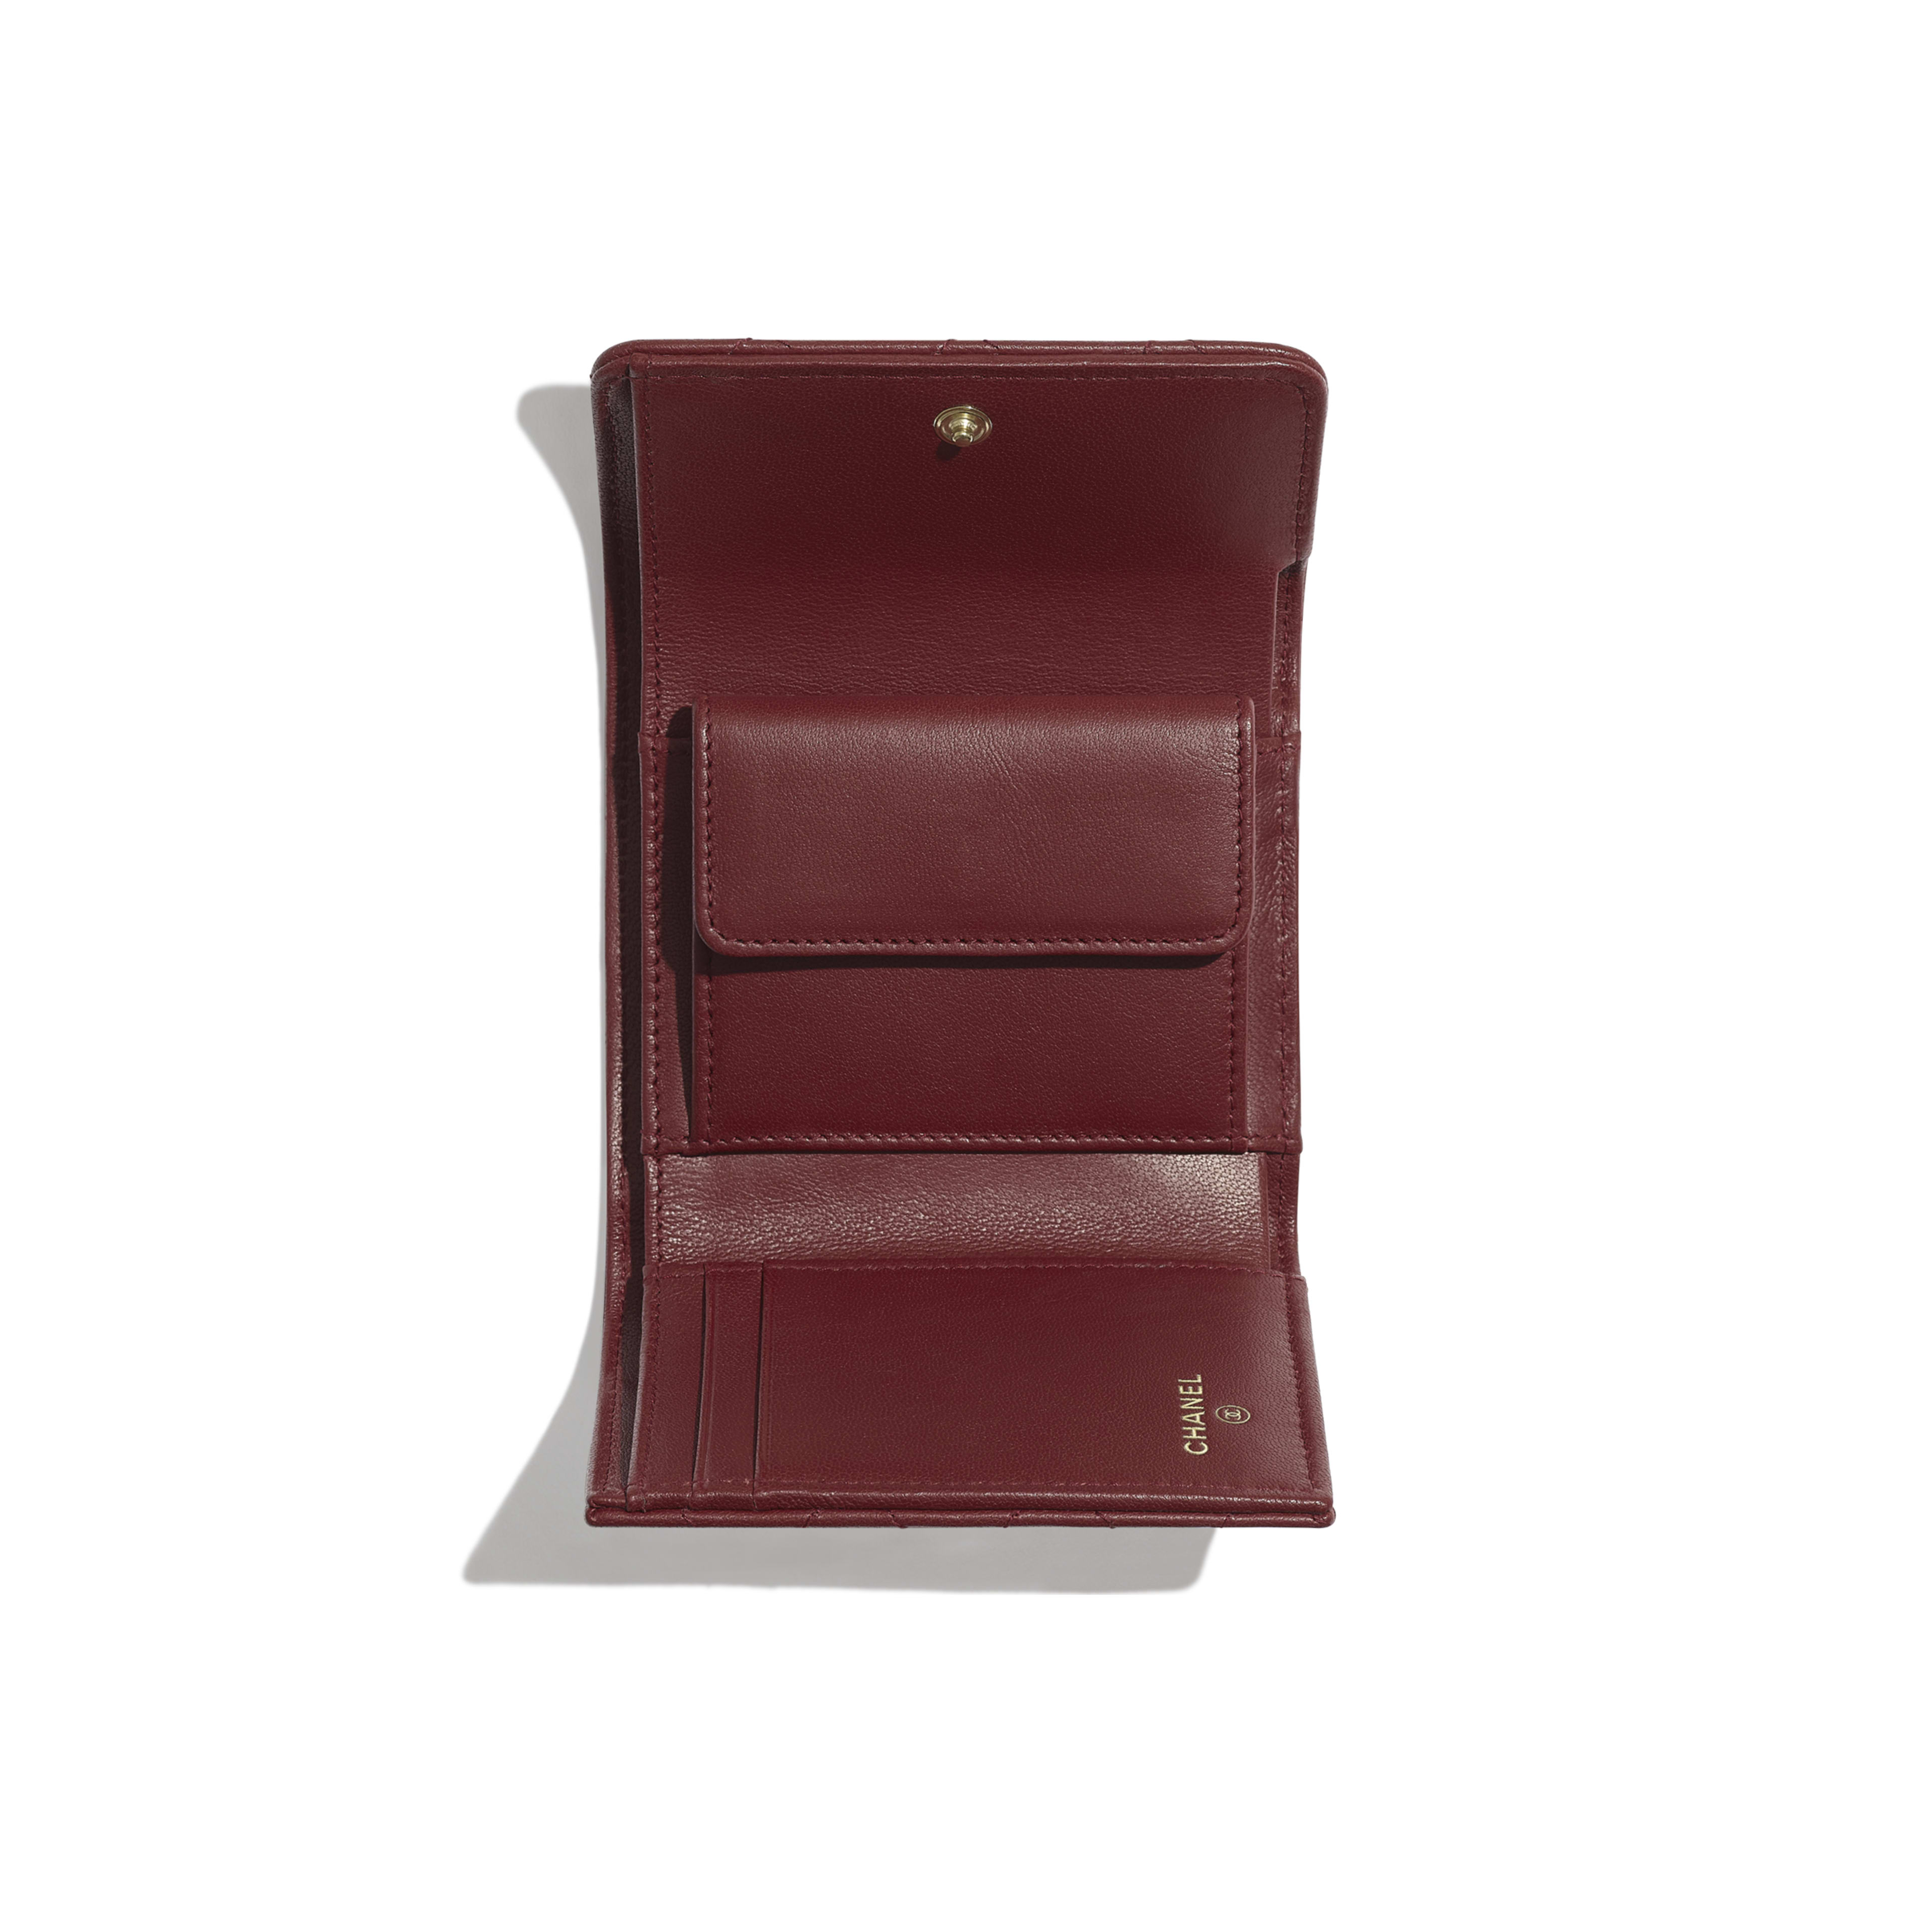 Small Flap Wallet - Burgundy - Lambskin - Other view - see full sized version